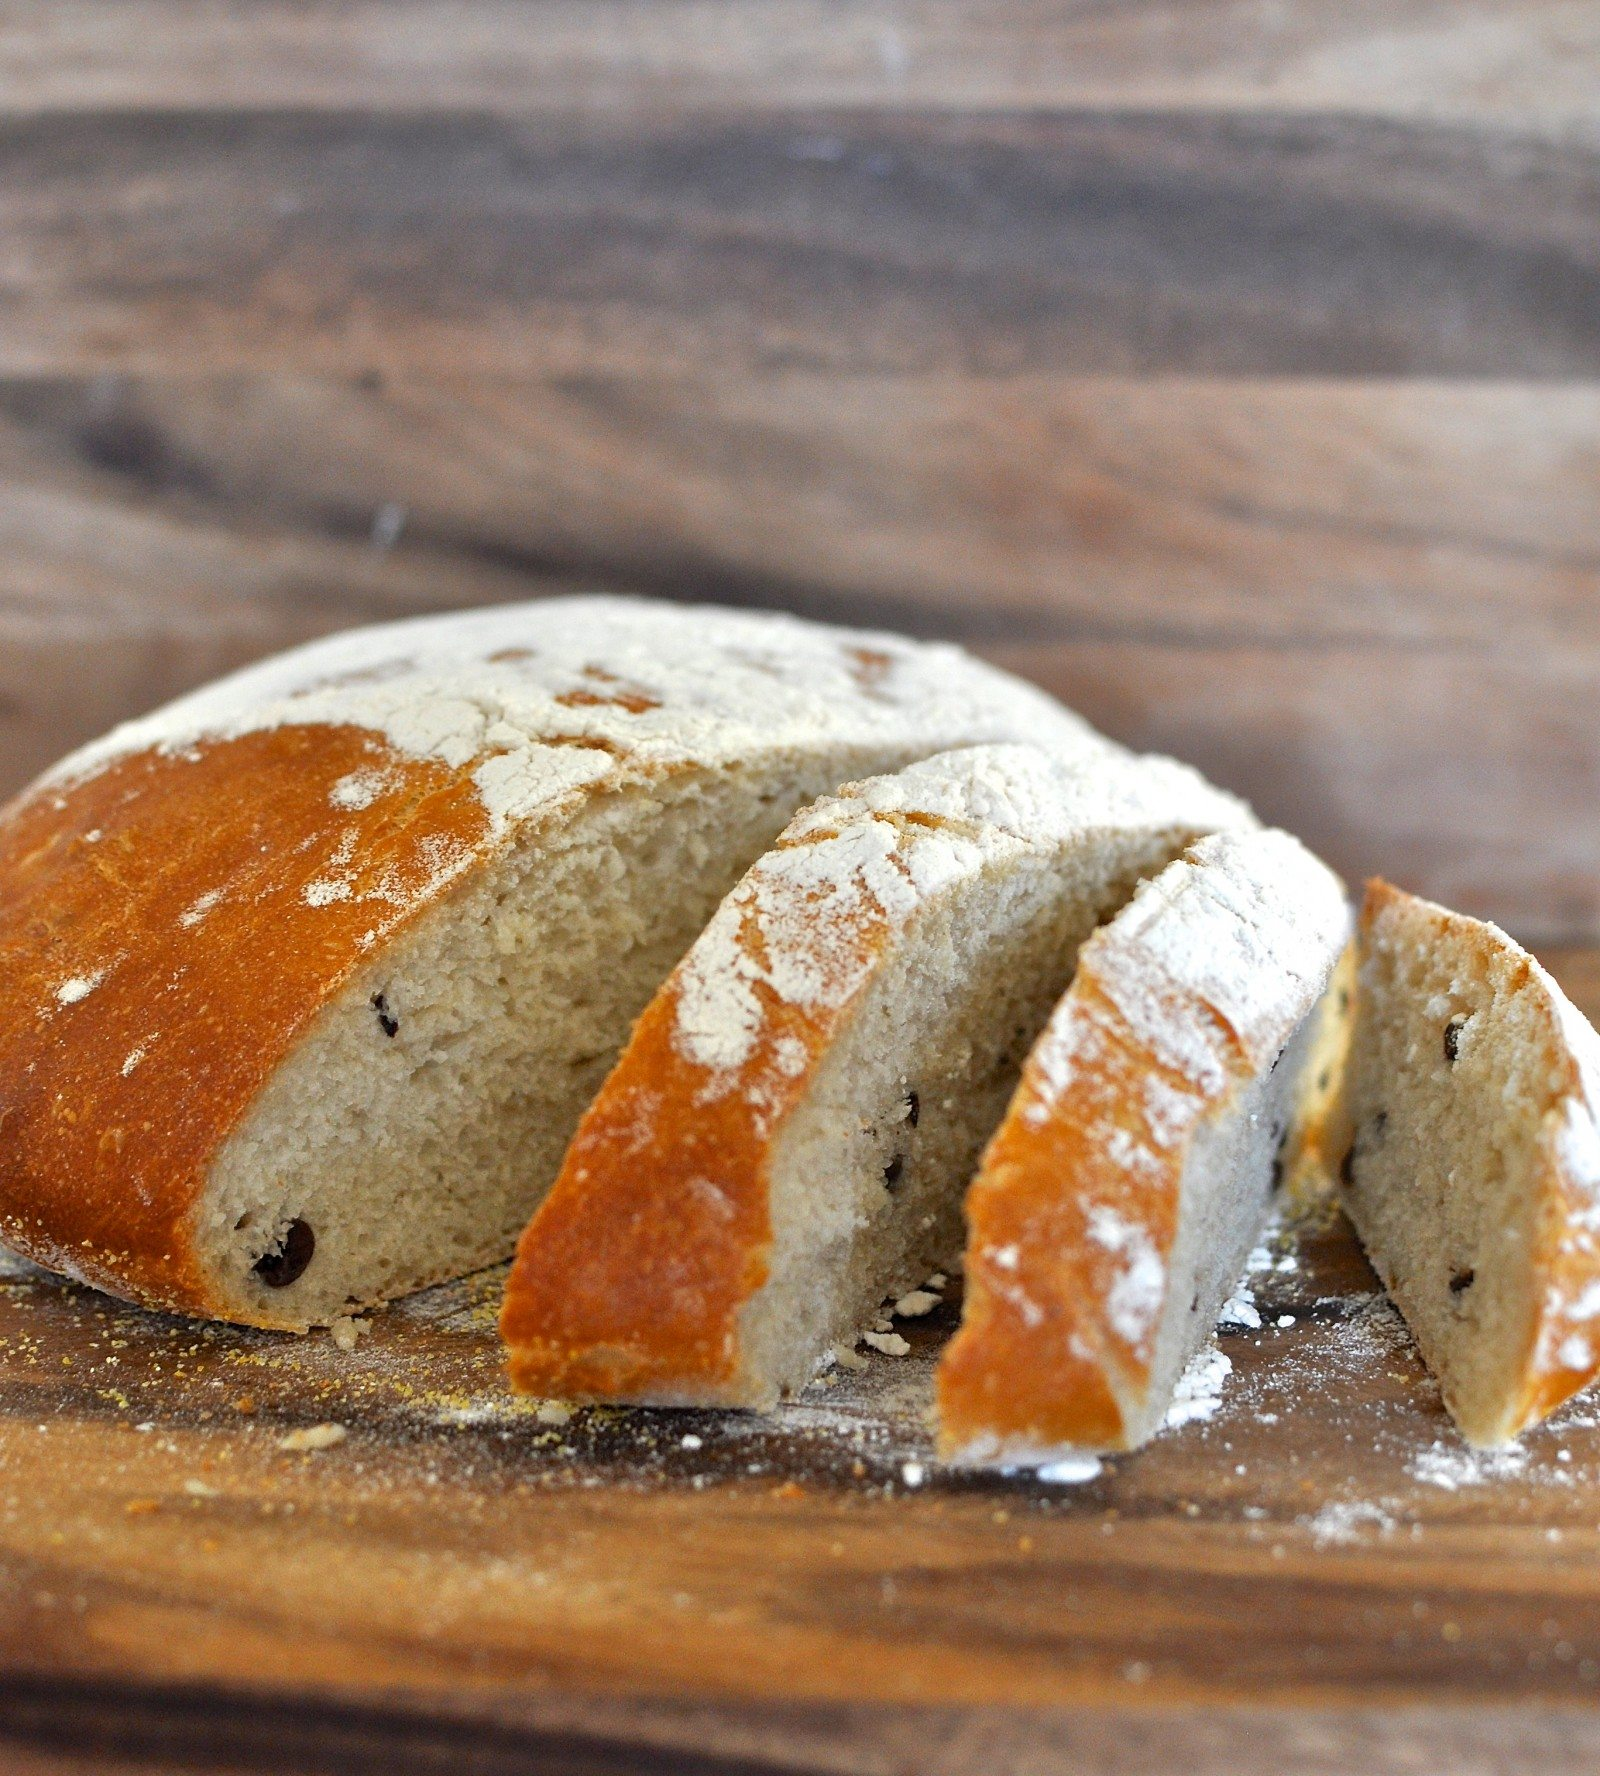 Olive bread – the best bread I've ever made, revisited